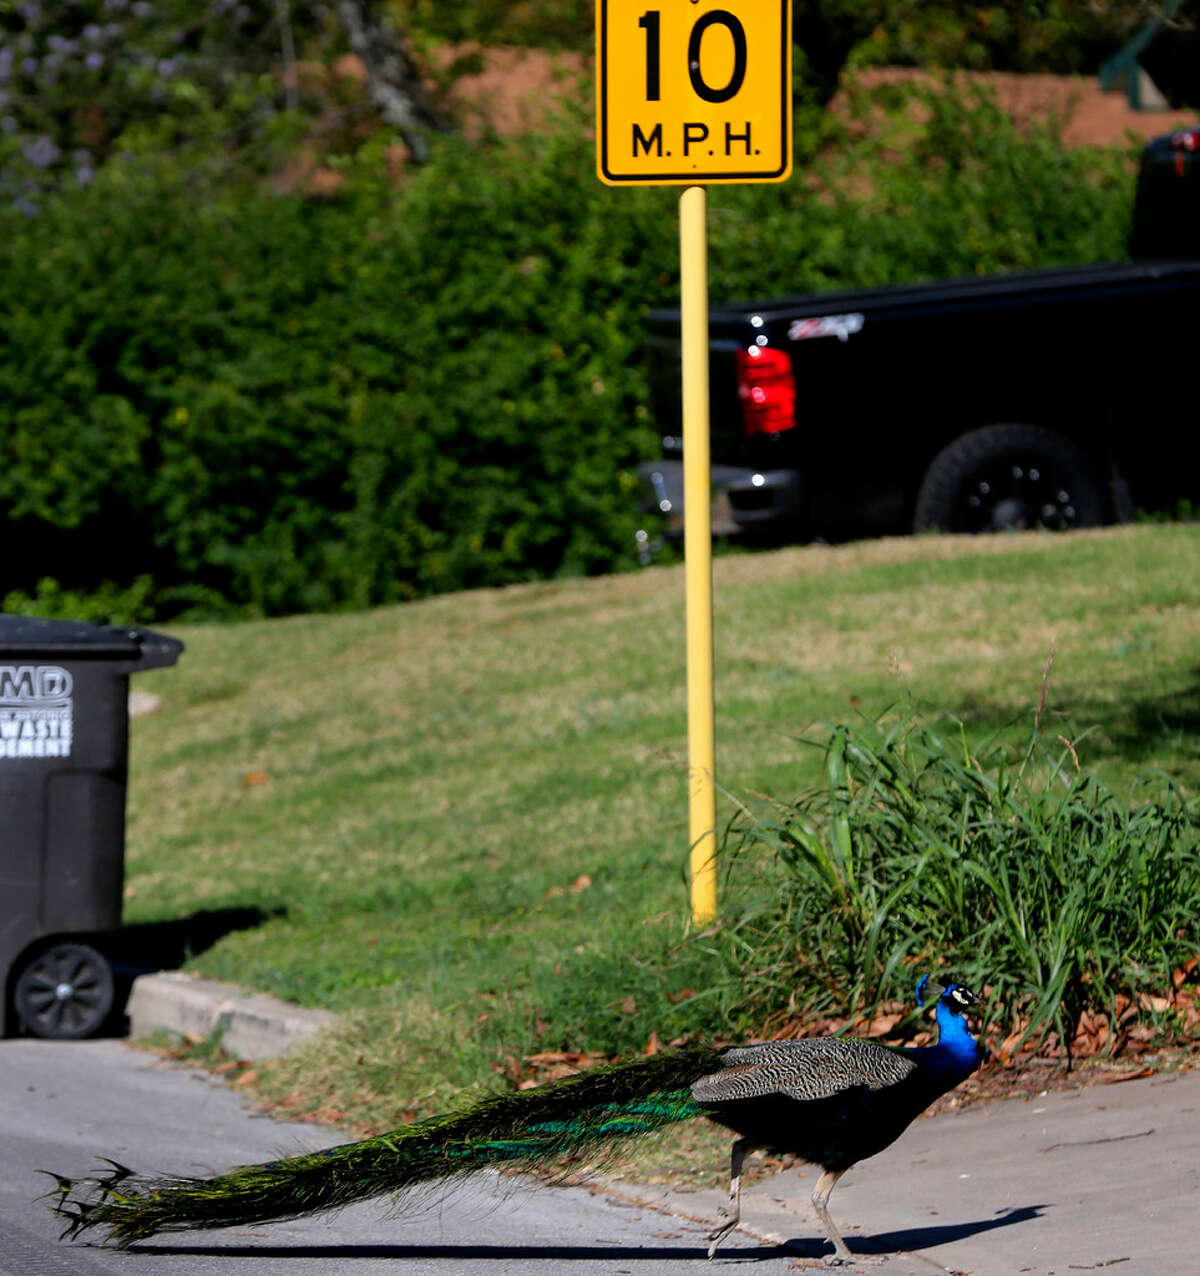 A peacock crosses the road Friday March 4, 2016 on the 4800 block of Lyceum near the Medical Center. Neighbors in the area said dozens of peacocks have been living in the area for more than 30 years and the birds are especially vocal around this time of year because it's mating season.